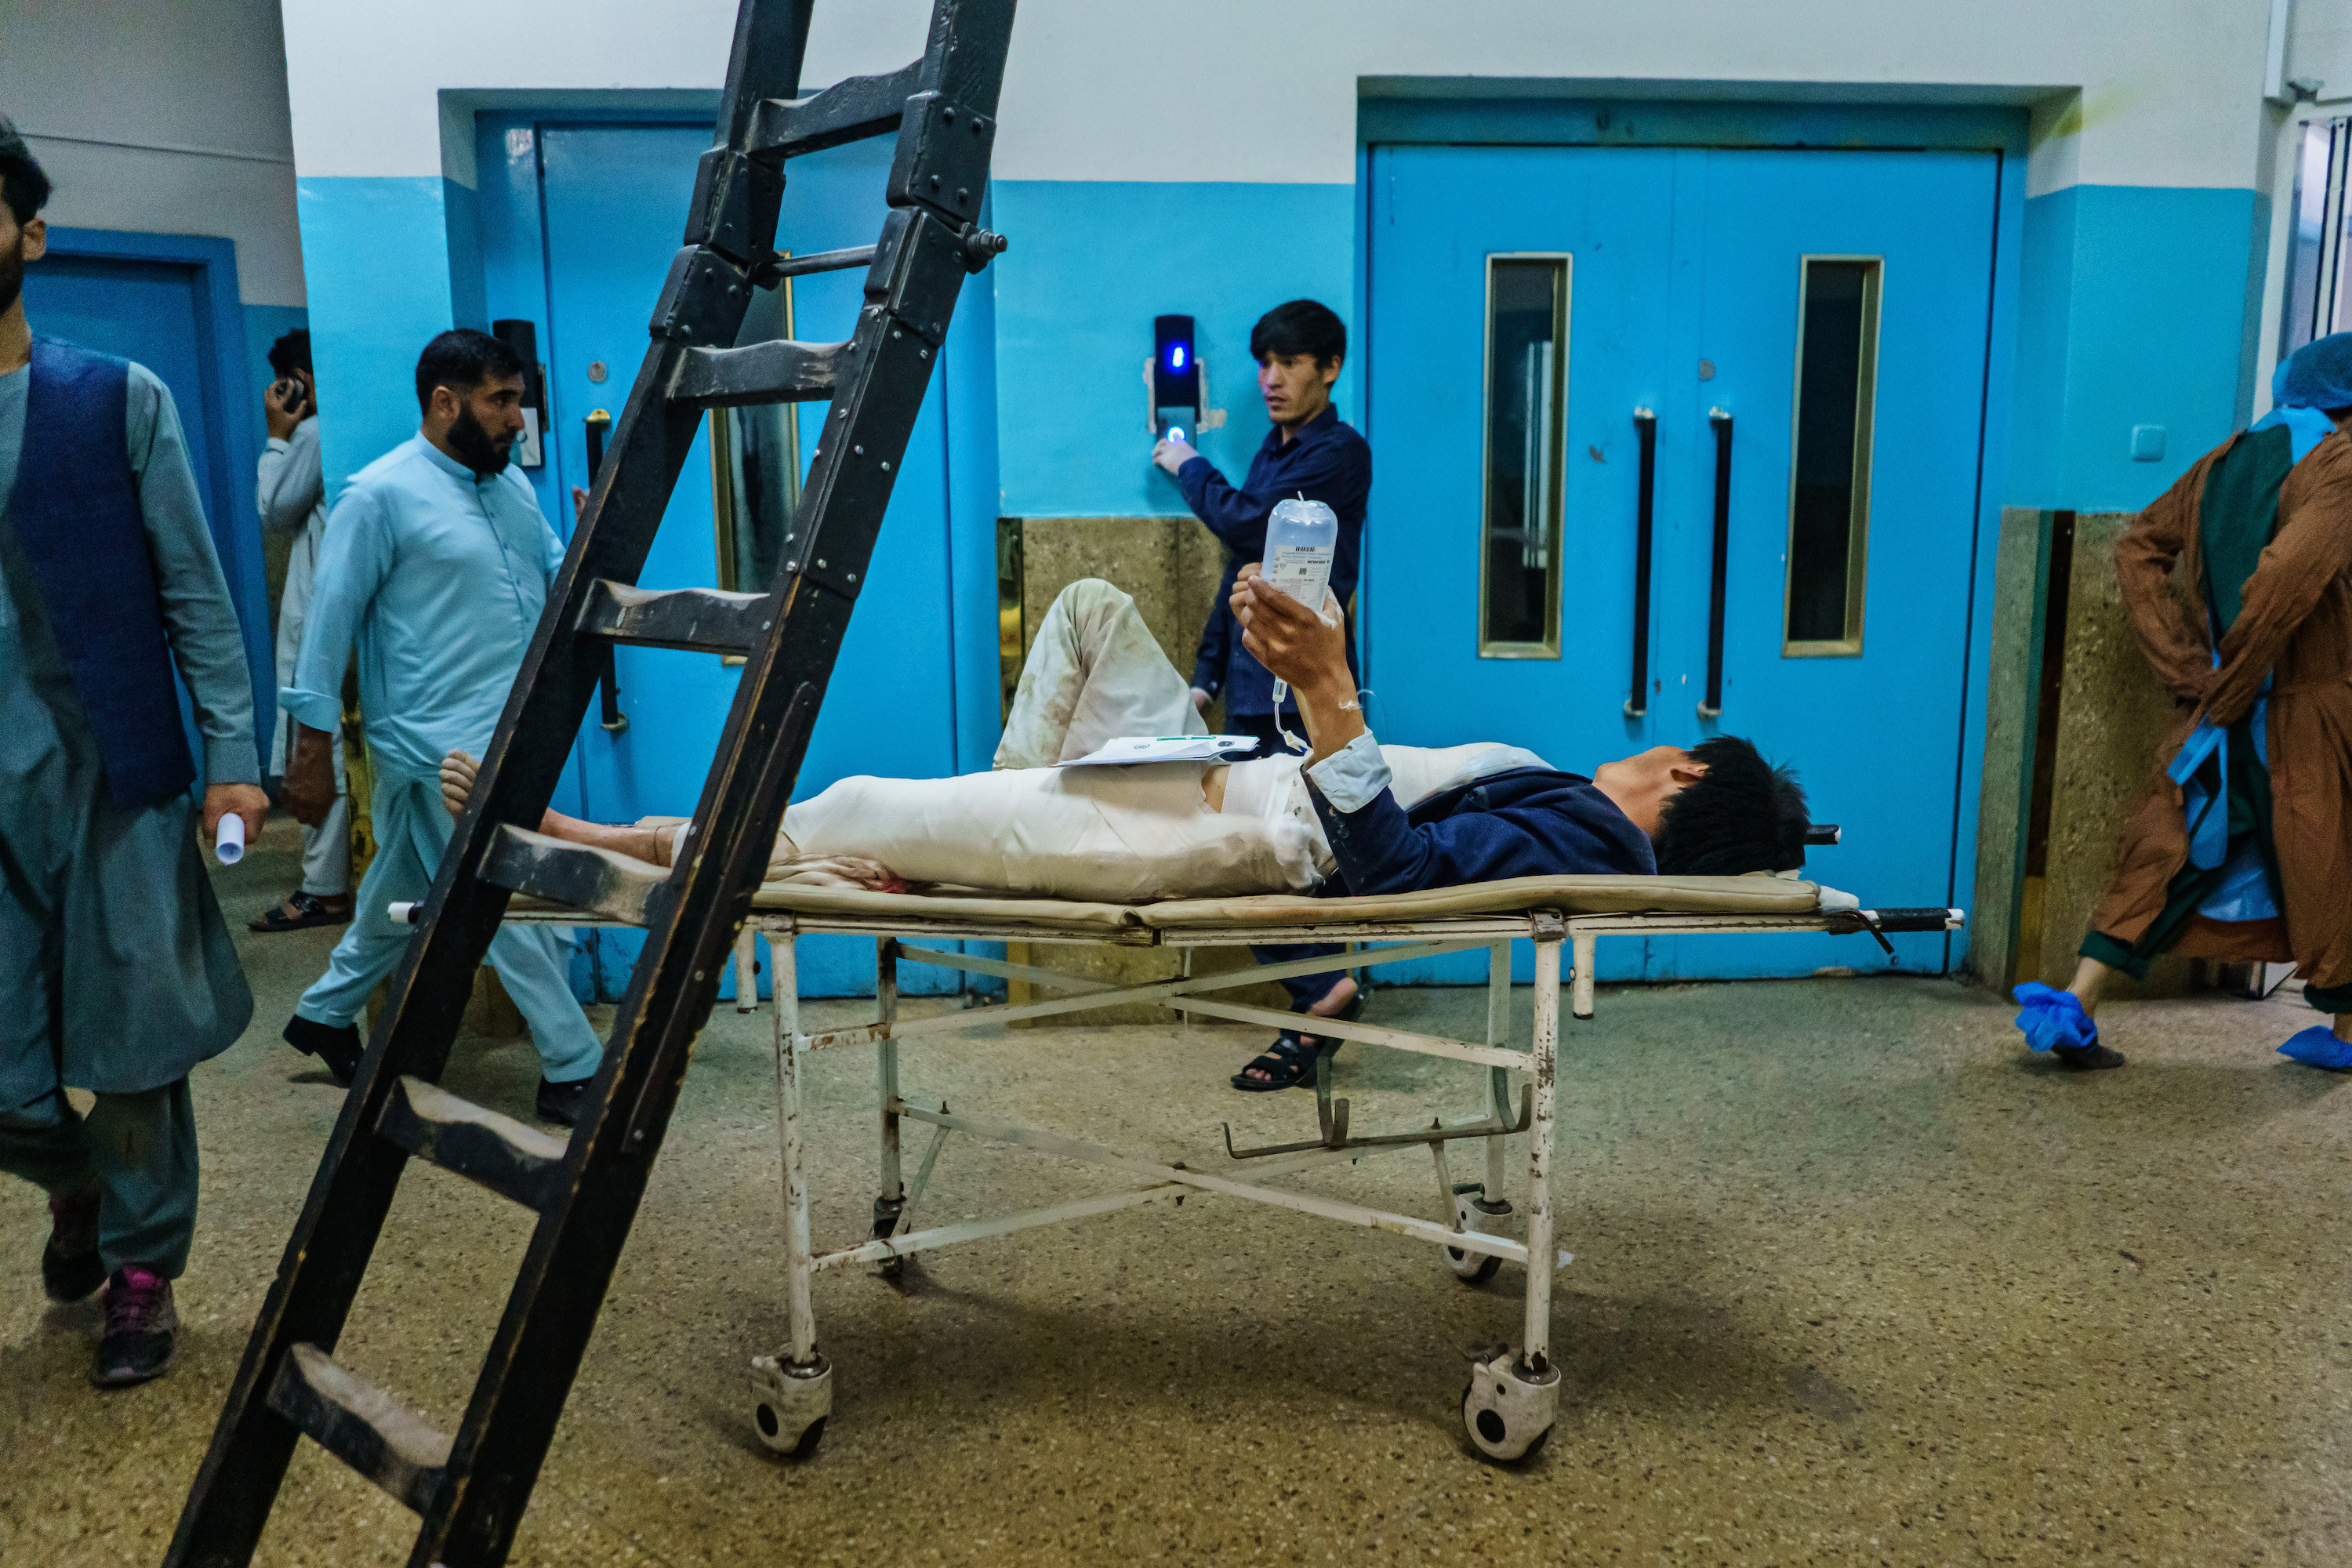 An injured person lying on a hospital bed holds an IV drip